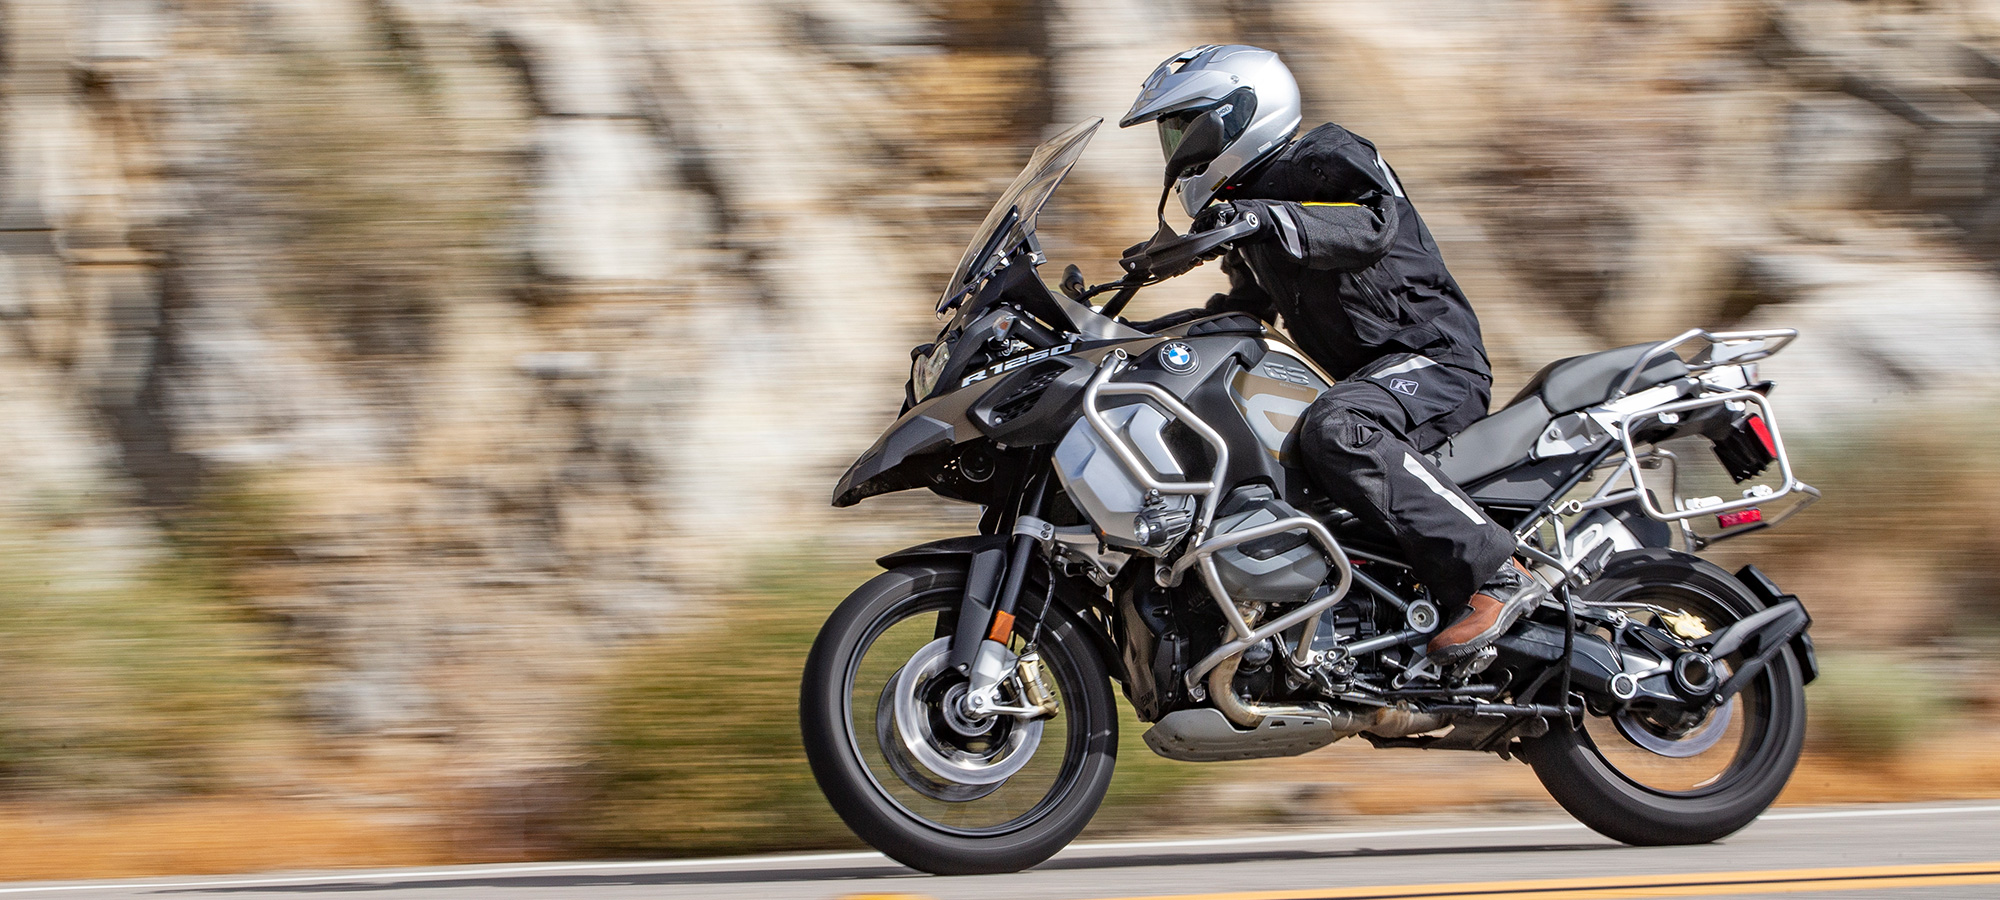 2019 Bmw R 1250 Gs Adventure Review Cycle World